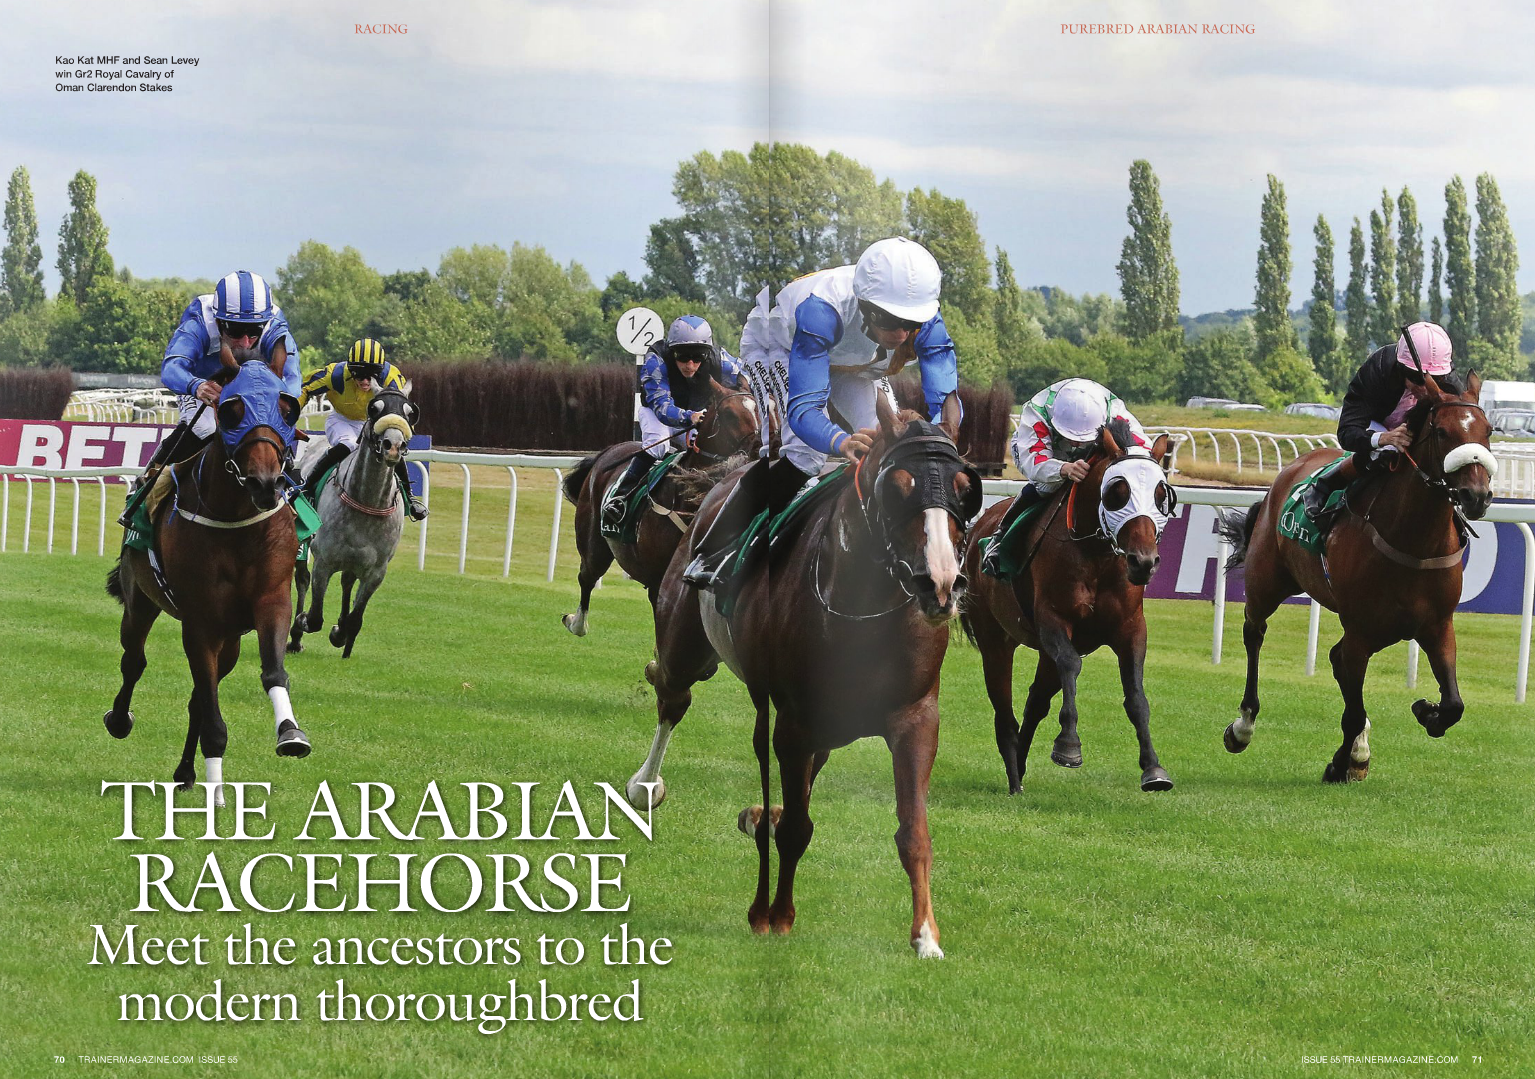 """N all countries other than the United Kingdom, Arabians can be trained alongside thoroughbreds by licensed racehorse trainers, who are increasingly recognising the Arabian as an additional income, providing fresh trading opportunities and attracting new owners. In France, for example, successful Arabian trainers usually better known for their thoroughbreds include Francois Rohaut, Damien de Watrigant, Philippe Sogorb, and Francis-Henri Graffard, who each feature in the top 20 leading Arabian trainers by prize money. It is unfortunate that UK thoroughbred trainers are being excluded, but it is something the British Horseracing Authority (BHA) and the Arabian Racing Organisation of the UK (ARO) are aware of and on which they are working RACING Purebred Arabian horseracing is held throughout the world under the regulatory authority of each country's horseracing administrative body in conjunction with the national Arabian horseracing organisation, the International Federation of Arabian Horse Racing Authorities (IFAHR). Therefore, in most cases, the administration and regulation of the sport are therefore little different to the thoroughbred industry. WORDS: LISSA OLIVER PHOTOS: ILkA GAnSERA LéVêquE, DEbbIE buRT – EquInE CREATIVE MEDIA 72 TRAINERMAGAZINE.COM ISSUE 55 since 2001, but what may come as a surprise to many is that Arabian racing has taken place in Britain since 1978. The Maktoum family had a vision to put Arabian racing on a par with the thoroughbred industry, with HH Sheikh Hamdan Bin Rashid Al Maktoum being the patron of ARO. With this aim in mind, ARO has progressed considerably, having been set up as an amateur not-for-profit administrative body, and remains predominantly amateur at the moment, though Genny Haynes, director of ARO, stresses """"at the moment."""" """"We have 36 national trainers and a total of 175 Purebred Arabians, which includes international runners, so it's a very small population,"""" Haynes points out. """"It would be very sad to lose the amateur"""